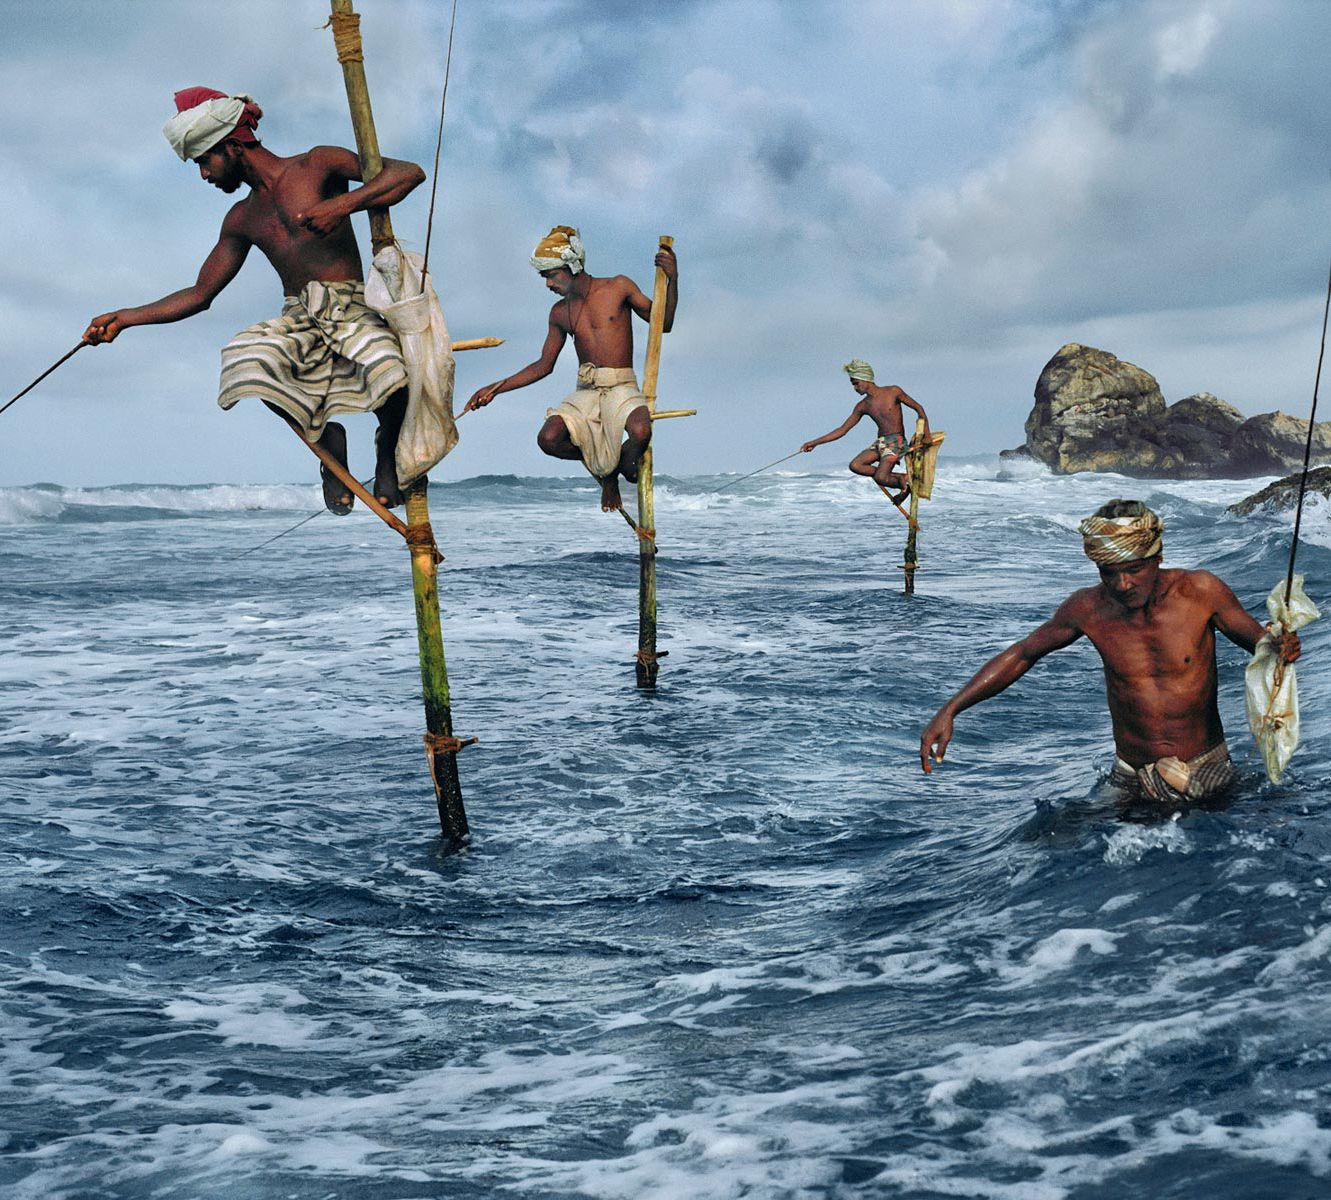 Sri Lanka / photo by Steve McCurry